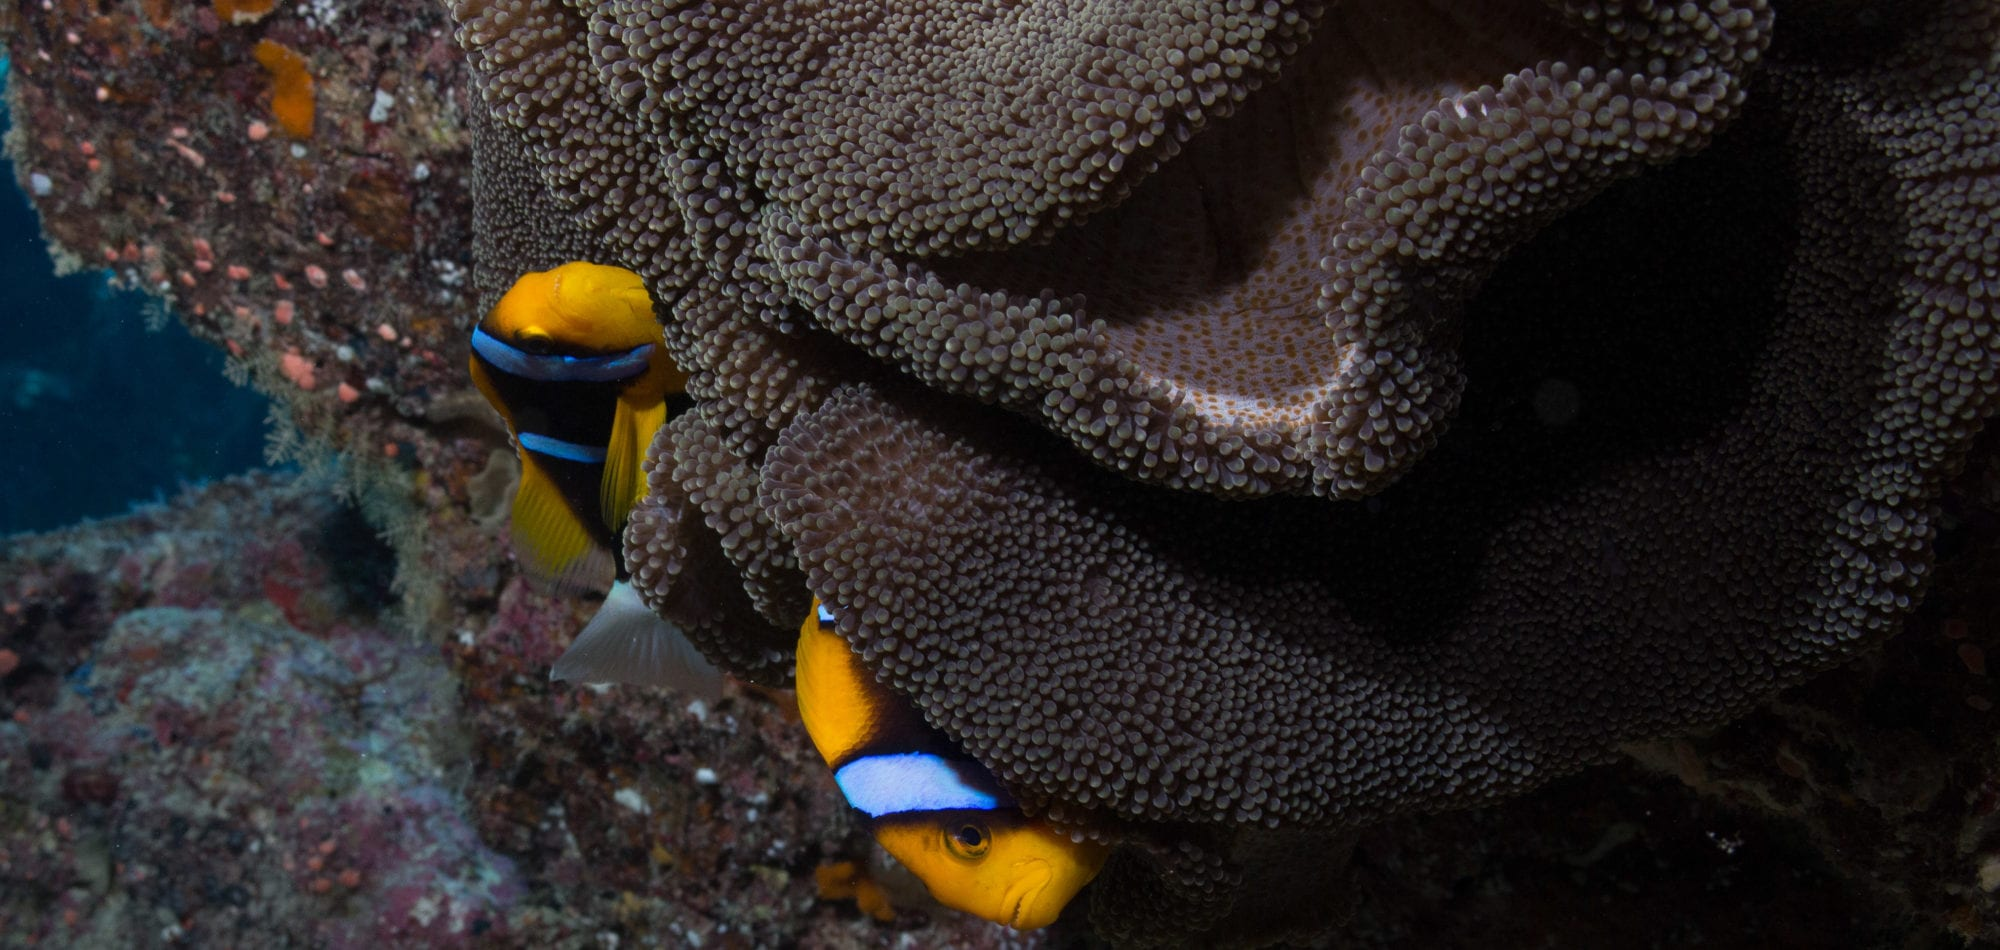 Scuba Diving trip in Australia - Clown Fish on the Great Barrier Reef